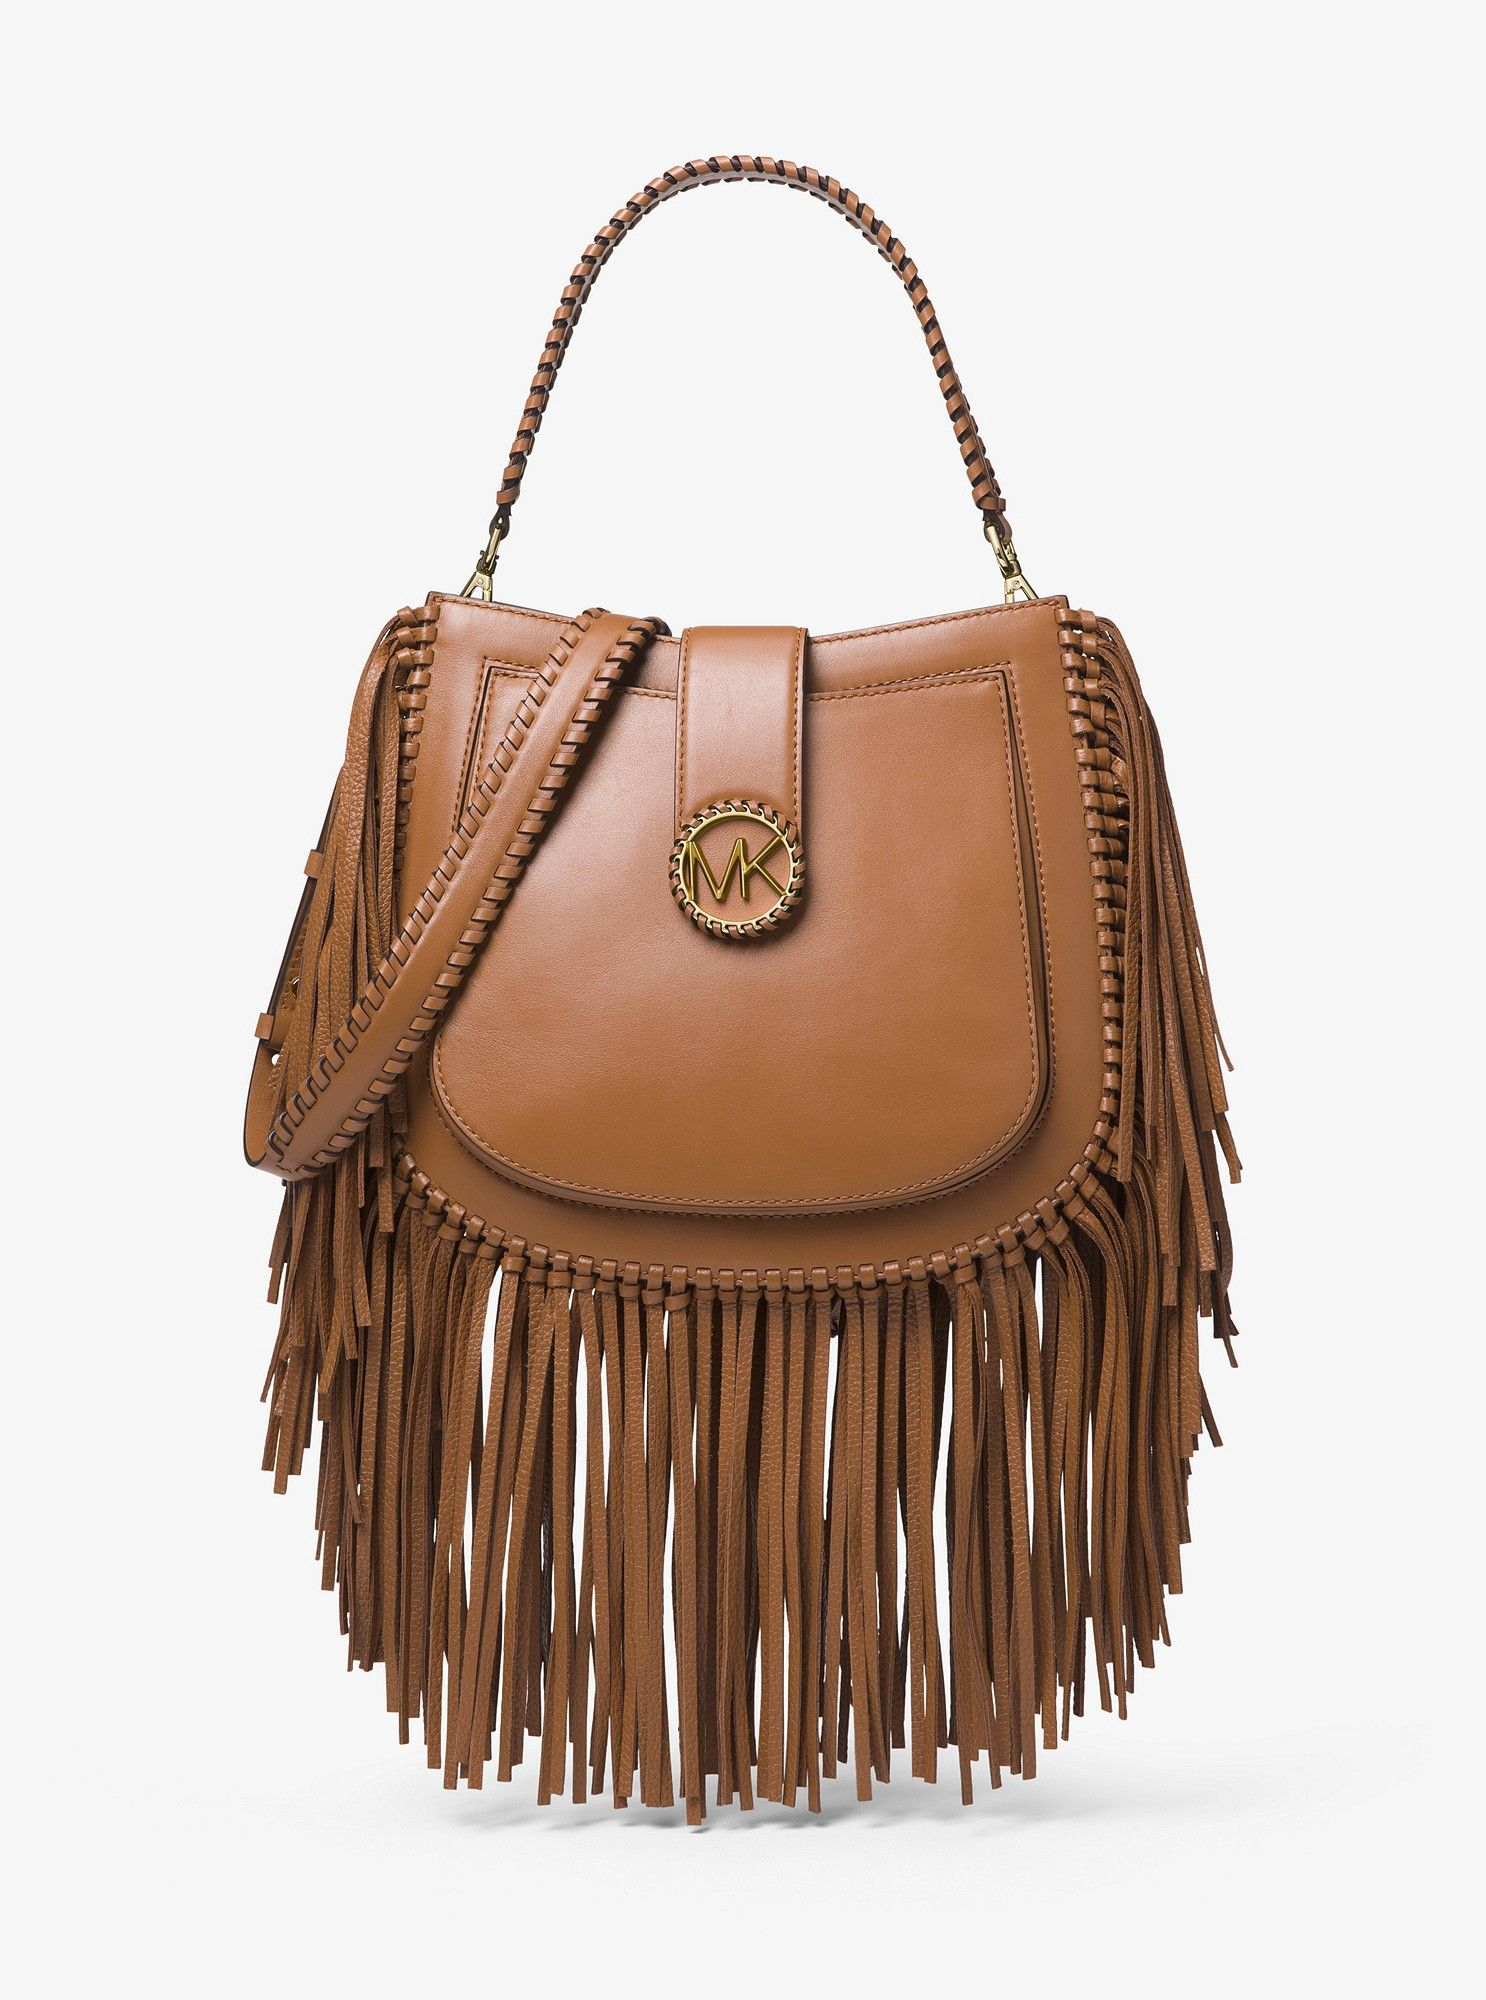 df8ce555560ab6 Michael Kors Lillie Medium Fringed Leather Shoulder Bag - Acorn ...